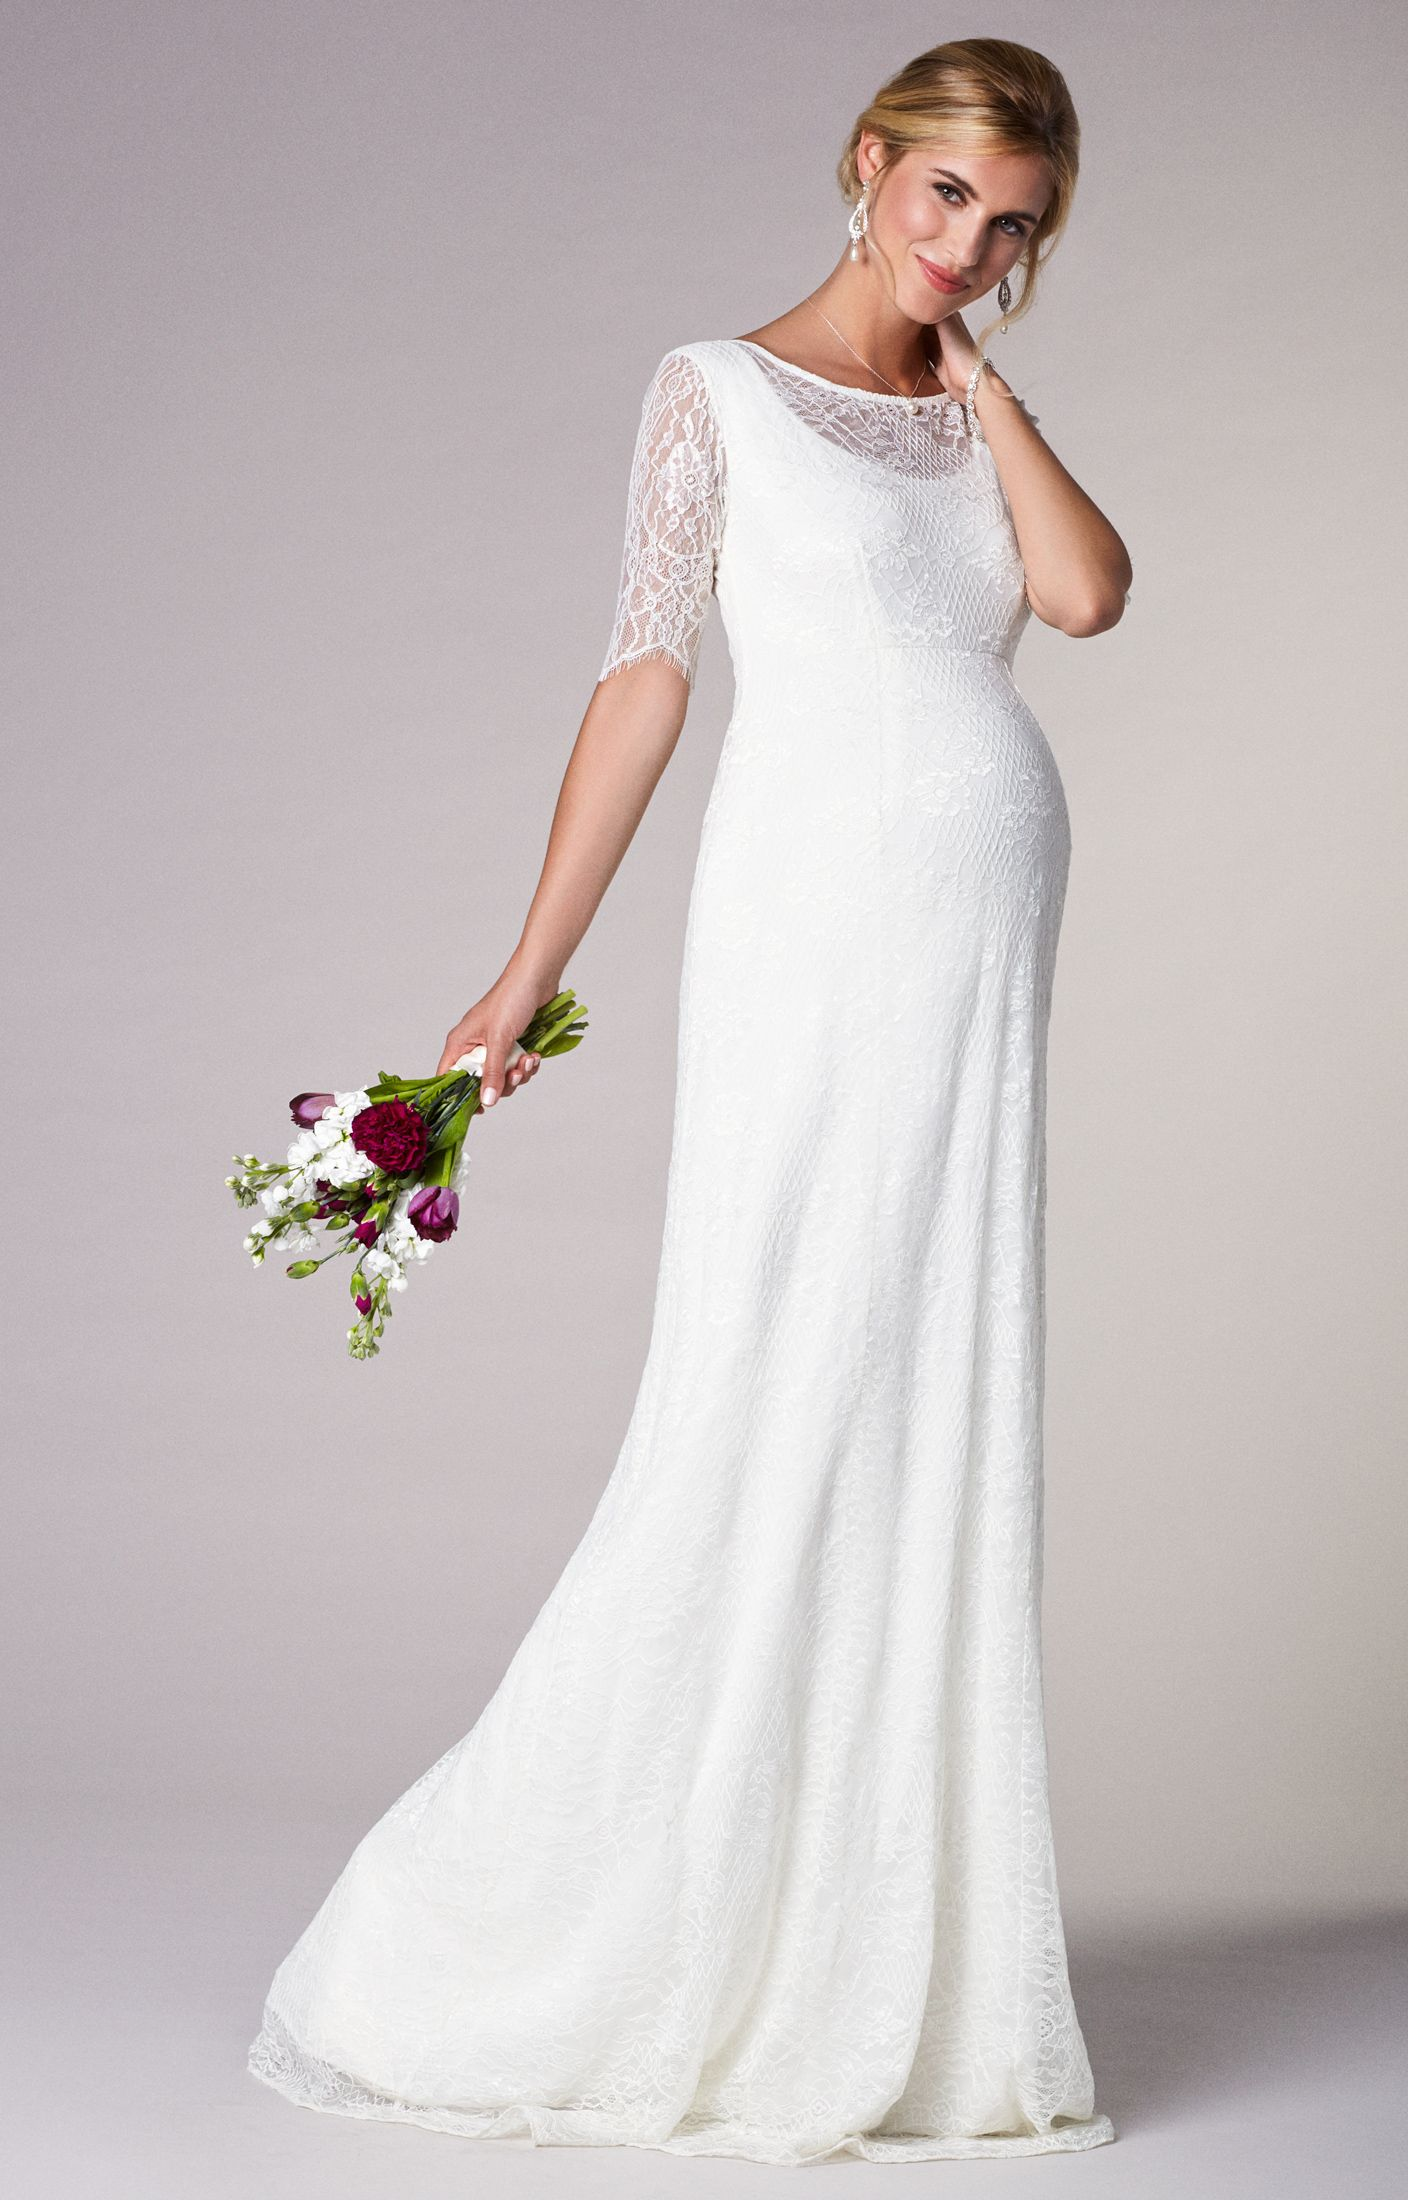 5c7a4bb89d3a Evie Lace Gown | maternity options | Pregnant wedding dress, Wedding ...